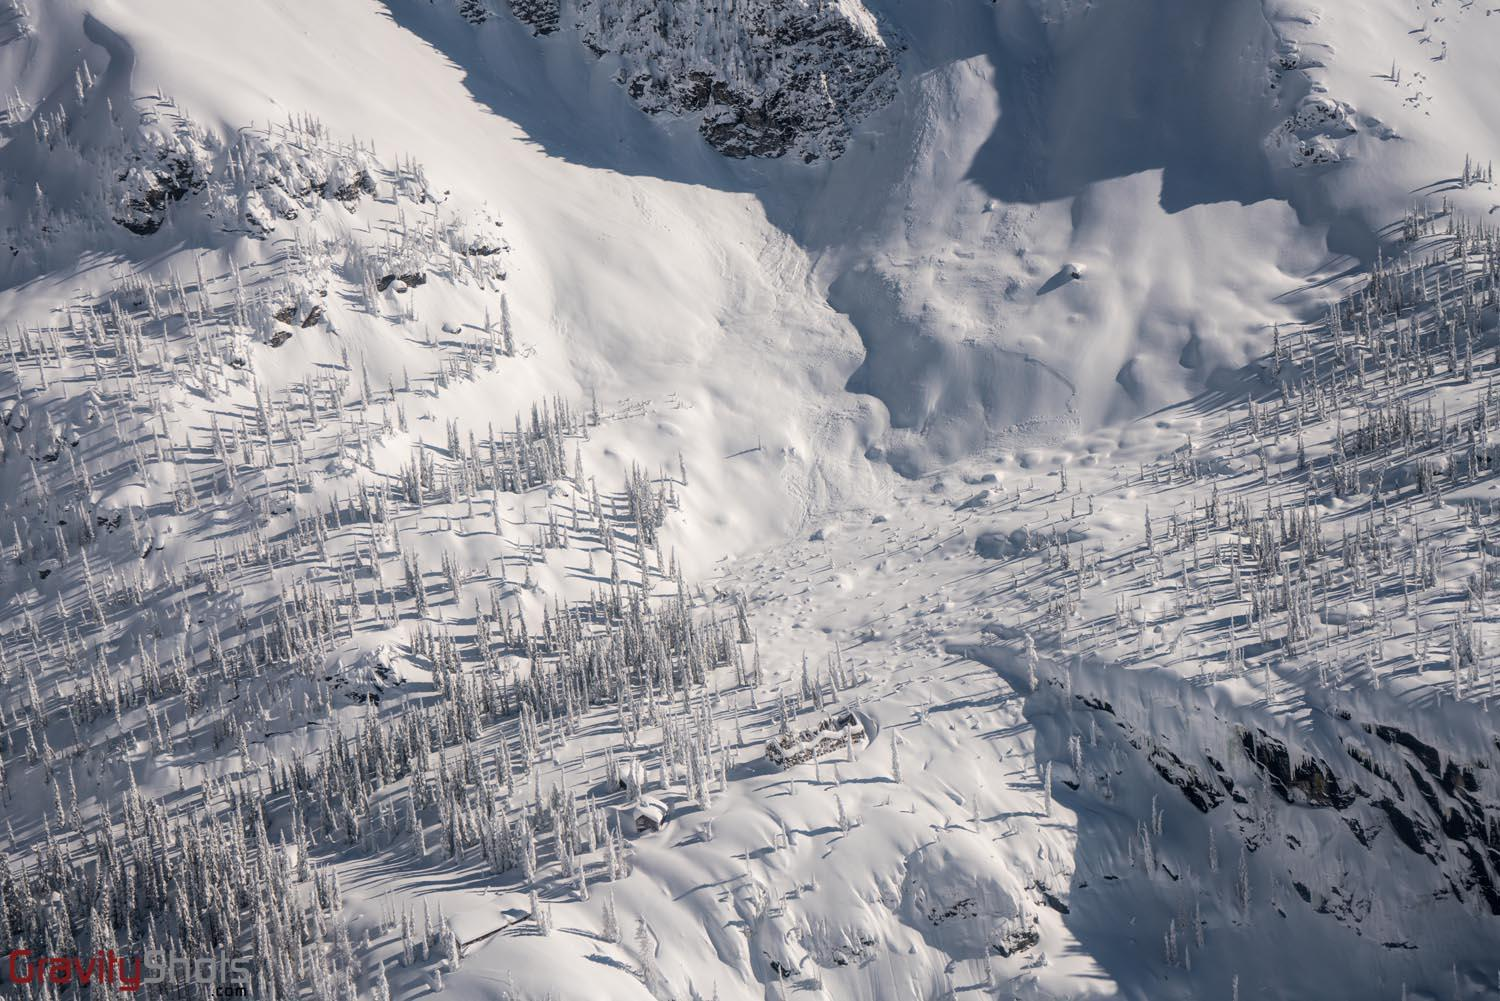 Sperry Chalet winter flyover, Courtesy Glacier National Park Conservancy